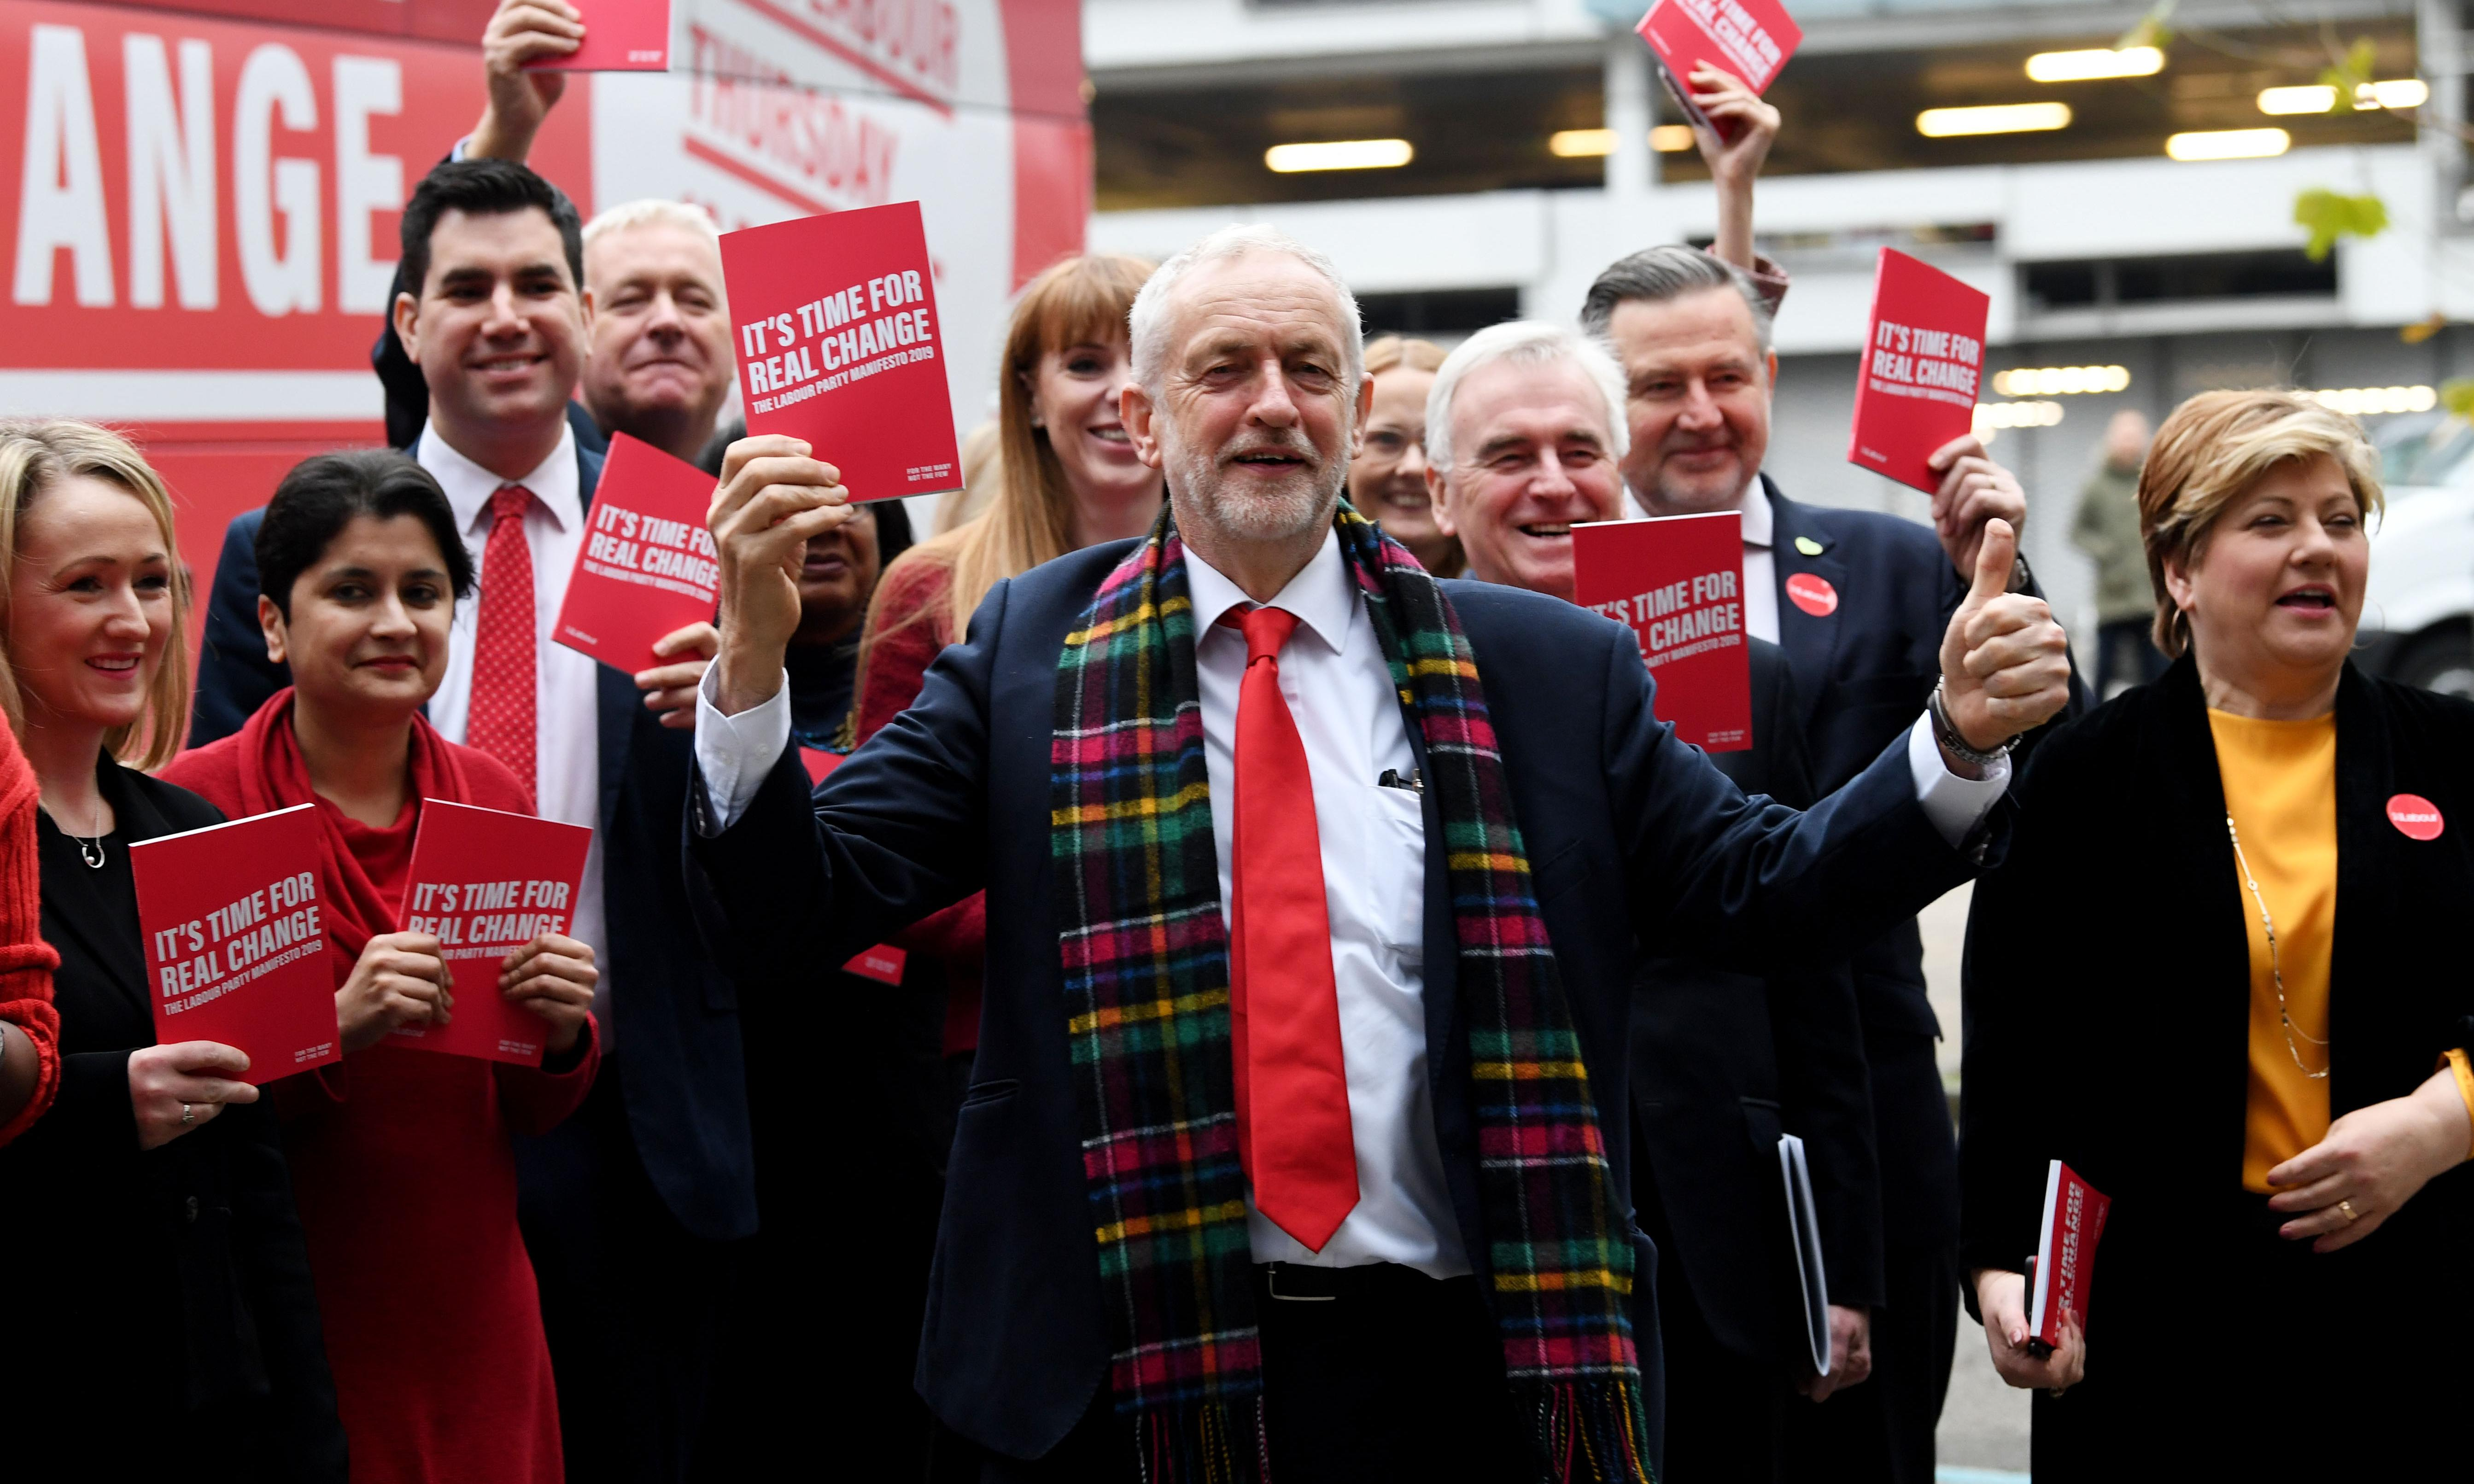 British Hindus voting for Labour are not 'traitors' to India